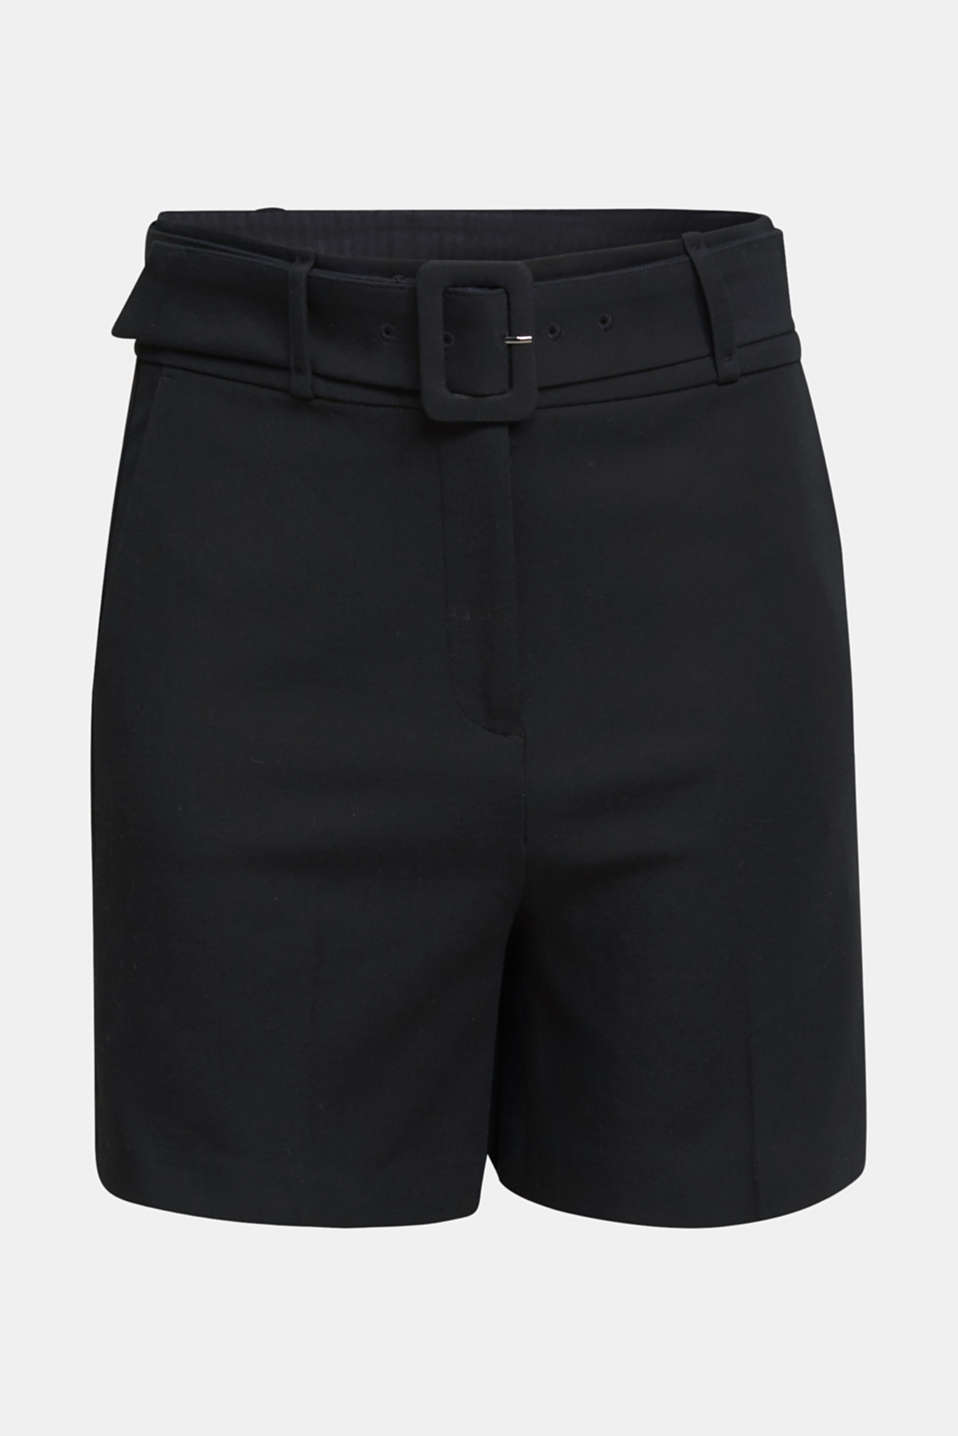 High-rise shorts with a belt, BLACK, detail image number 6